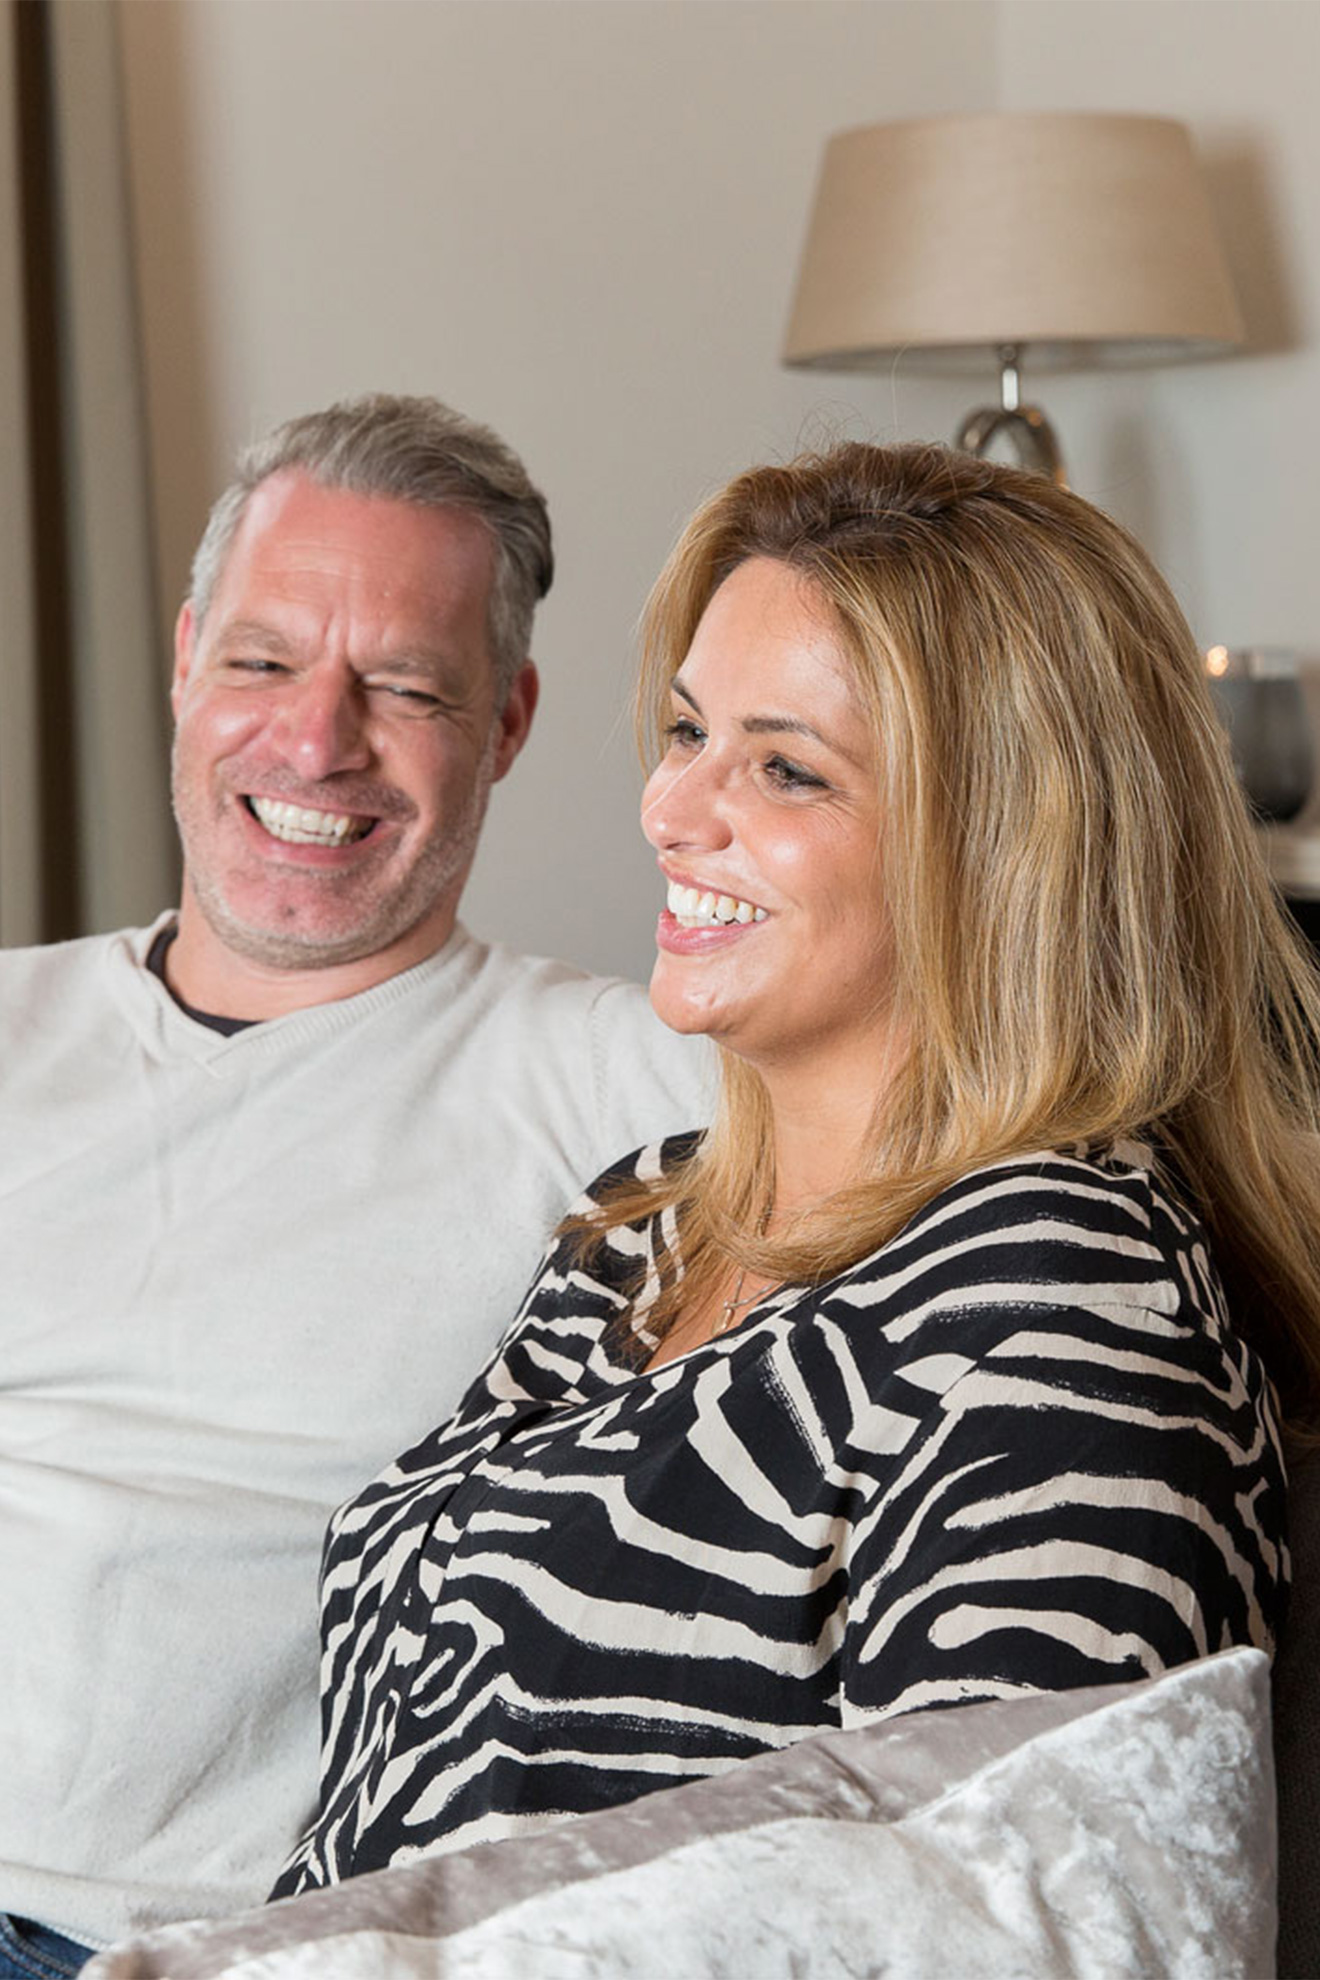 Couple laughing on a sofa.